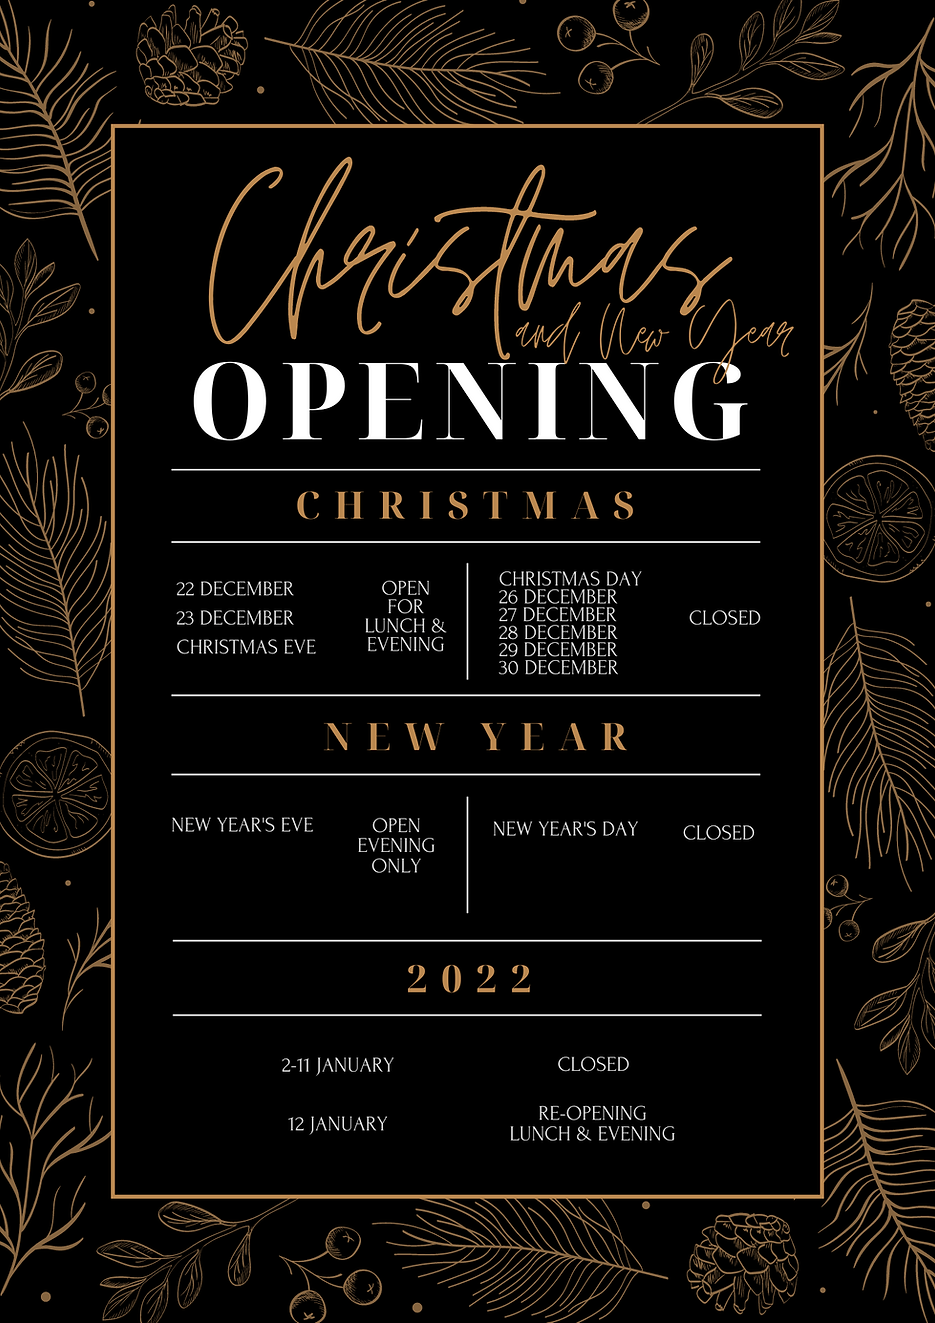 Bishops Christmas opening times 2021.png